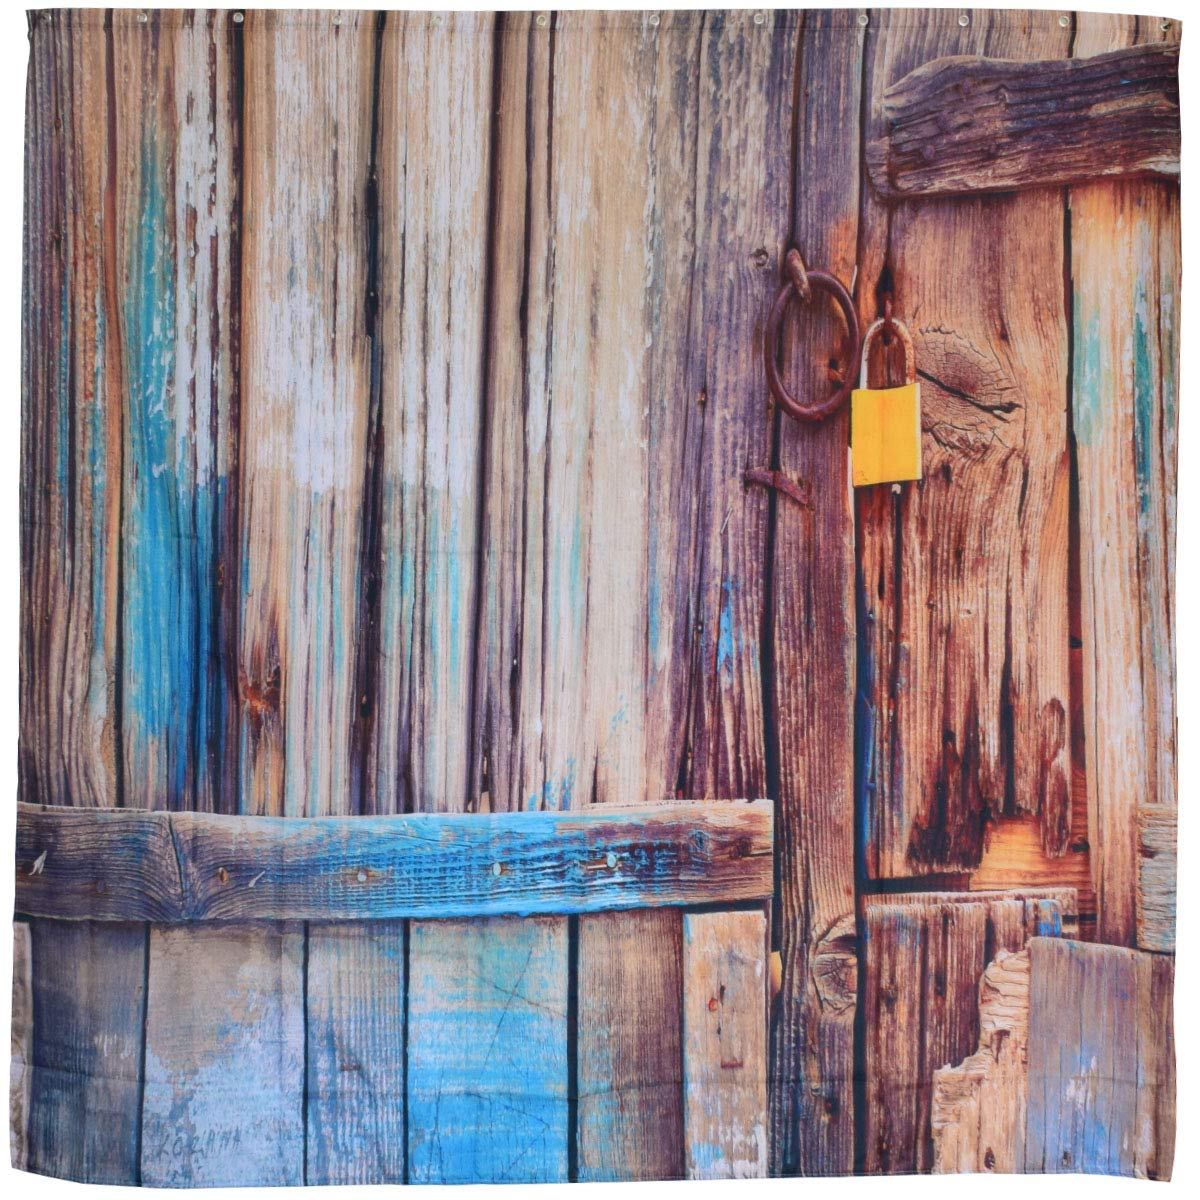 Rustic Vintage Fabric Shower Curtain,Old Brown Wooden Barn Door Decor Bath Curtain,Antique Country Rural Theme 3d Printing,Waterproof Polyester Bathroom Accessories Set with Hooks,72x72 Inch,Brown